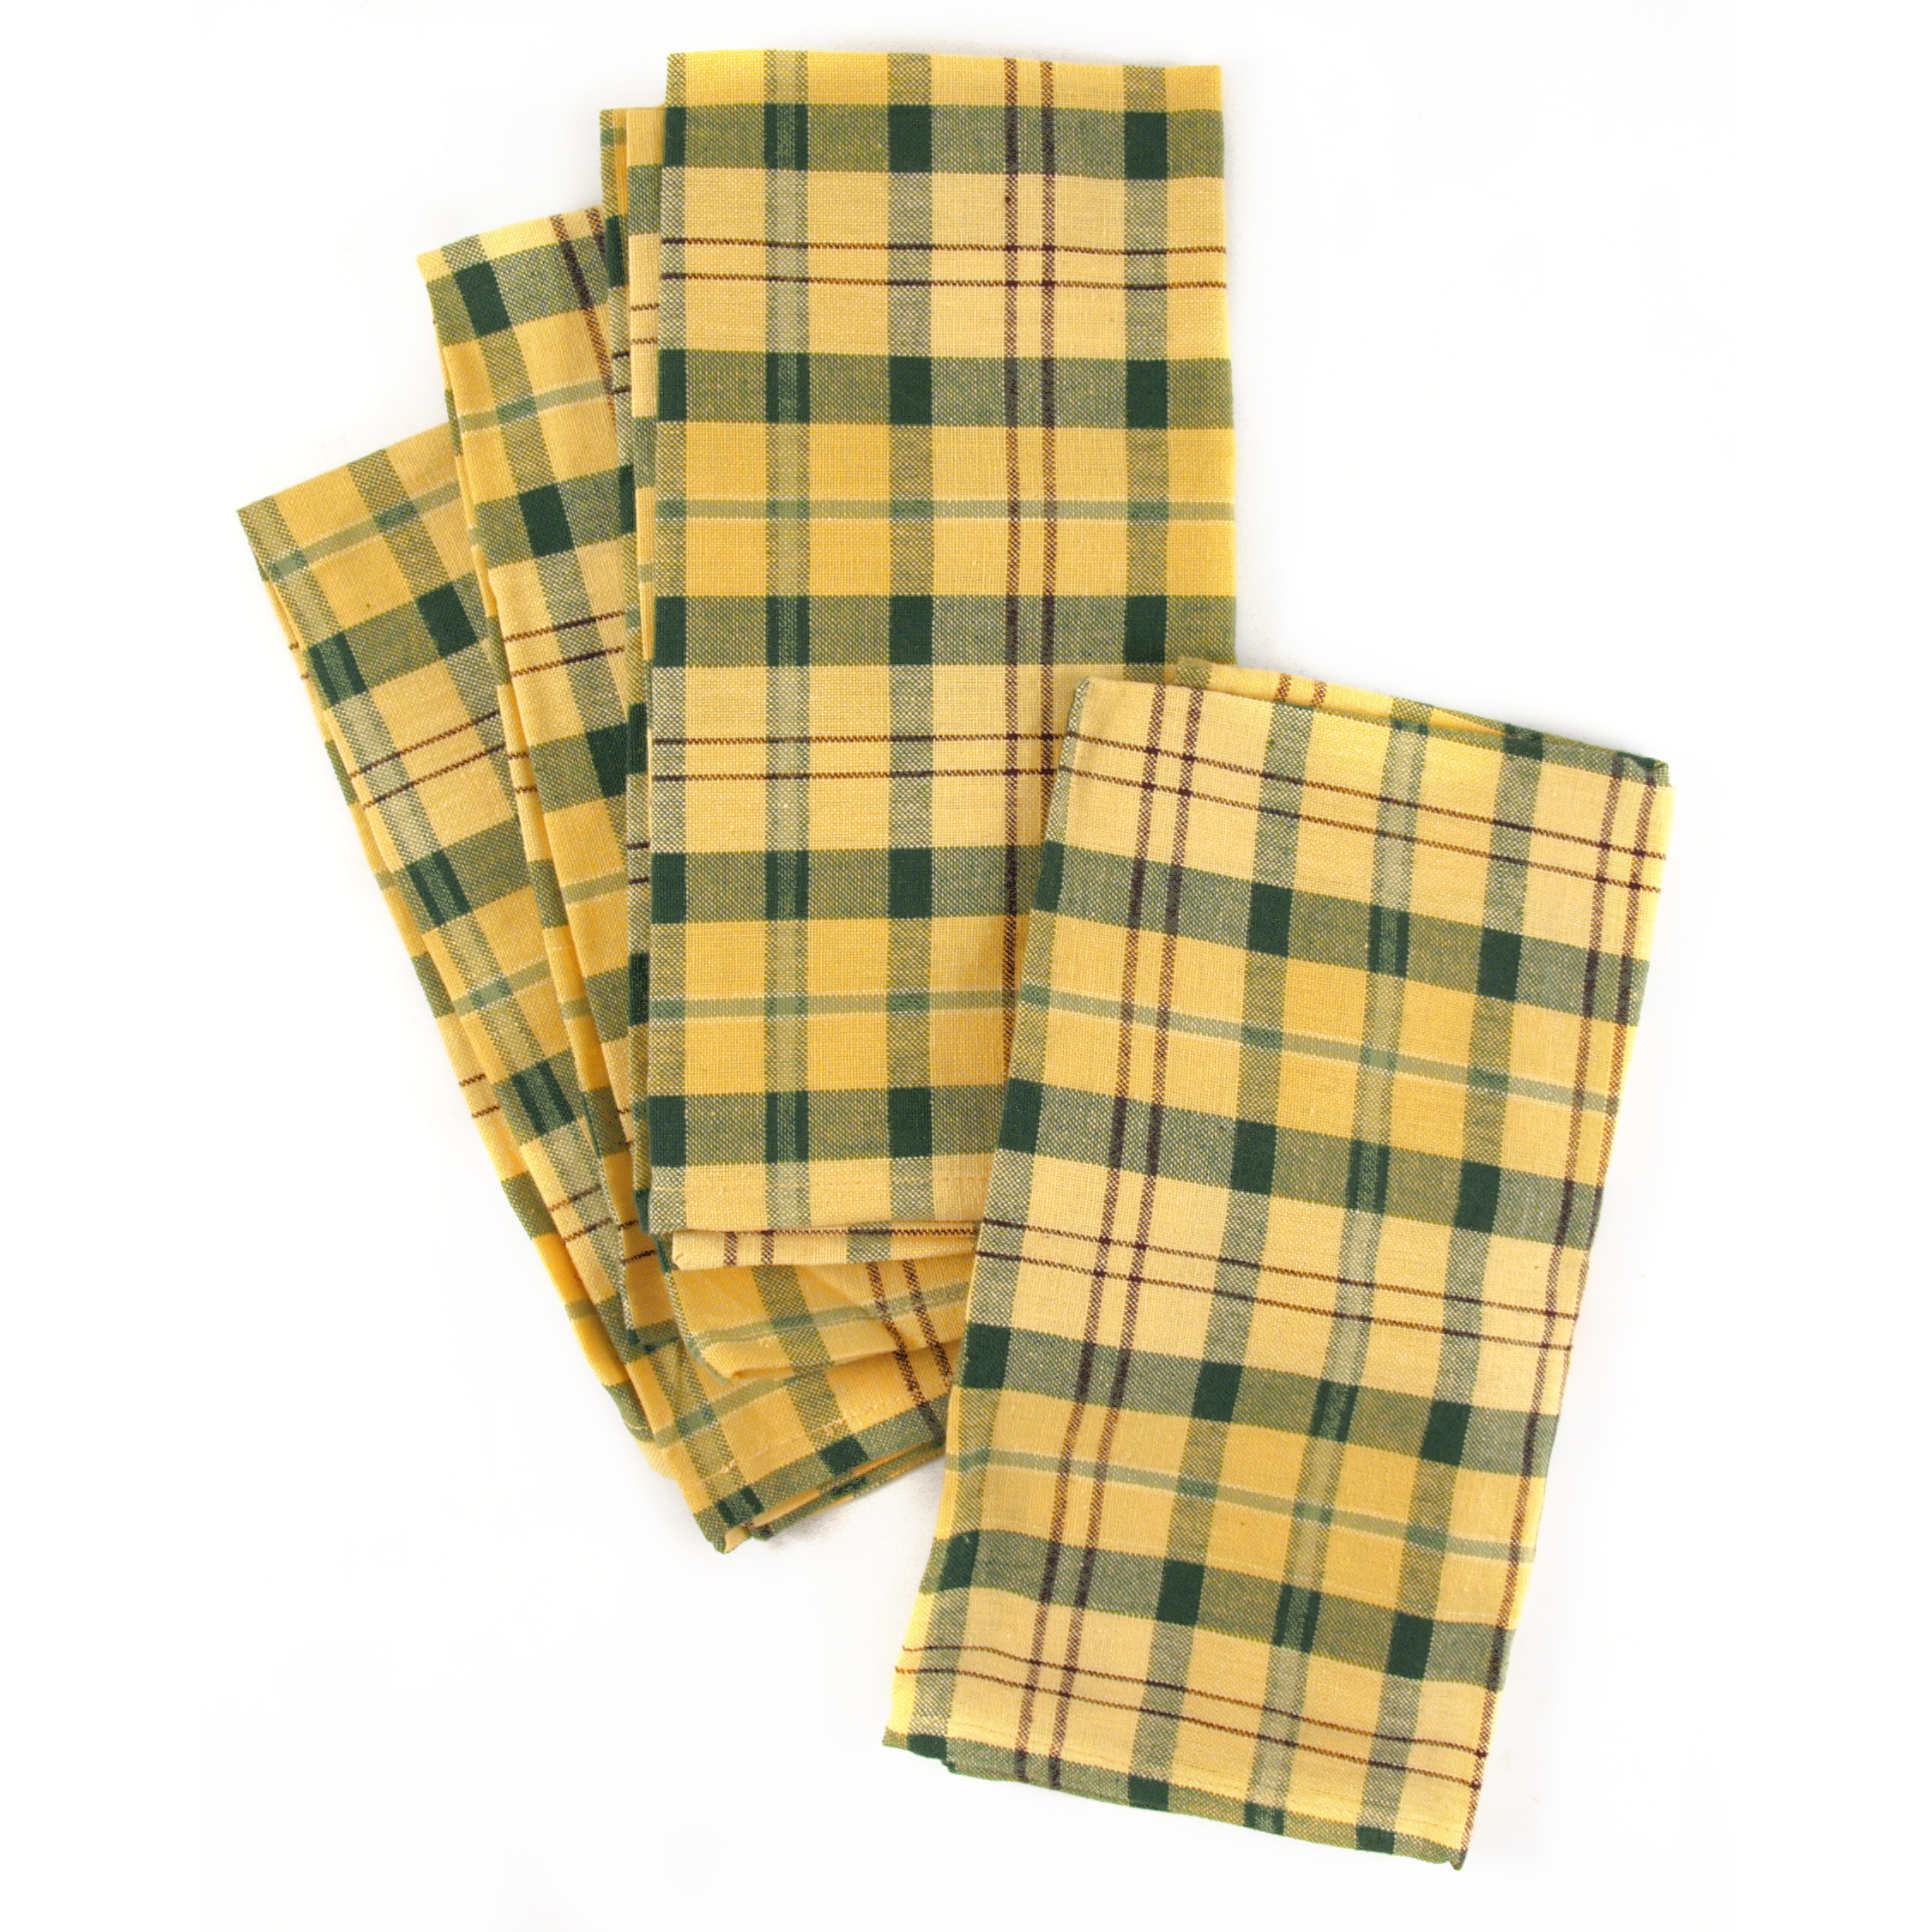 Town and Country Home Yellow and Green Plaid 100% Cotton Cloth Dinner Napkin, Set of 6